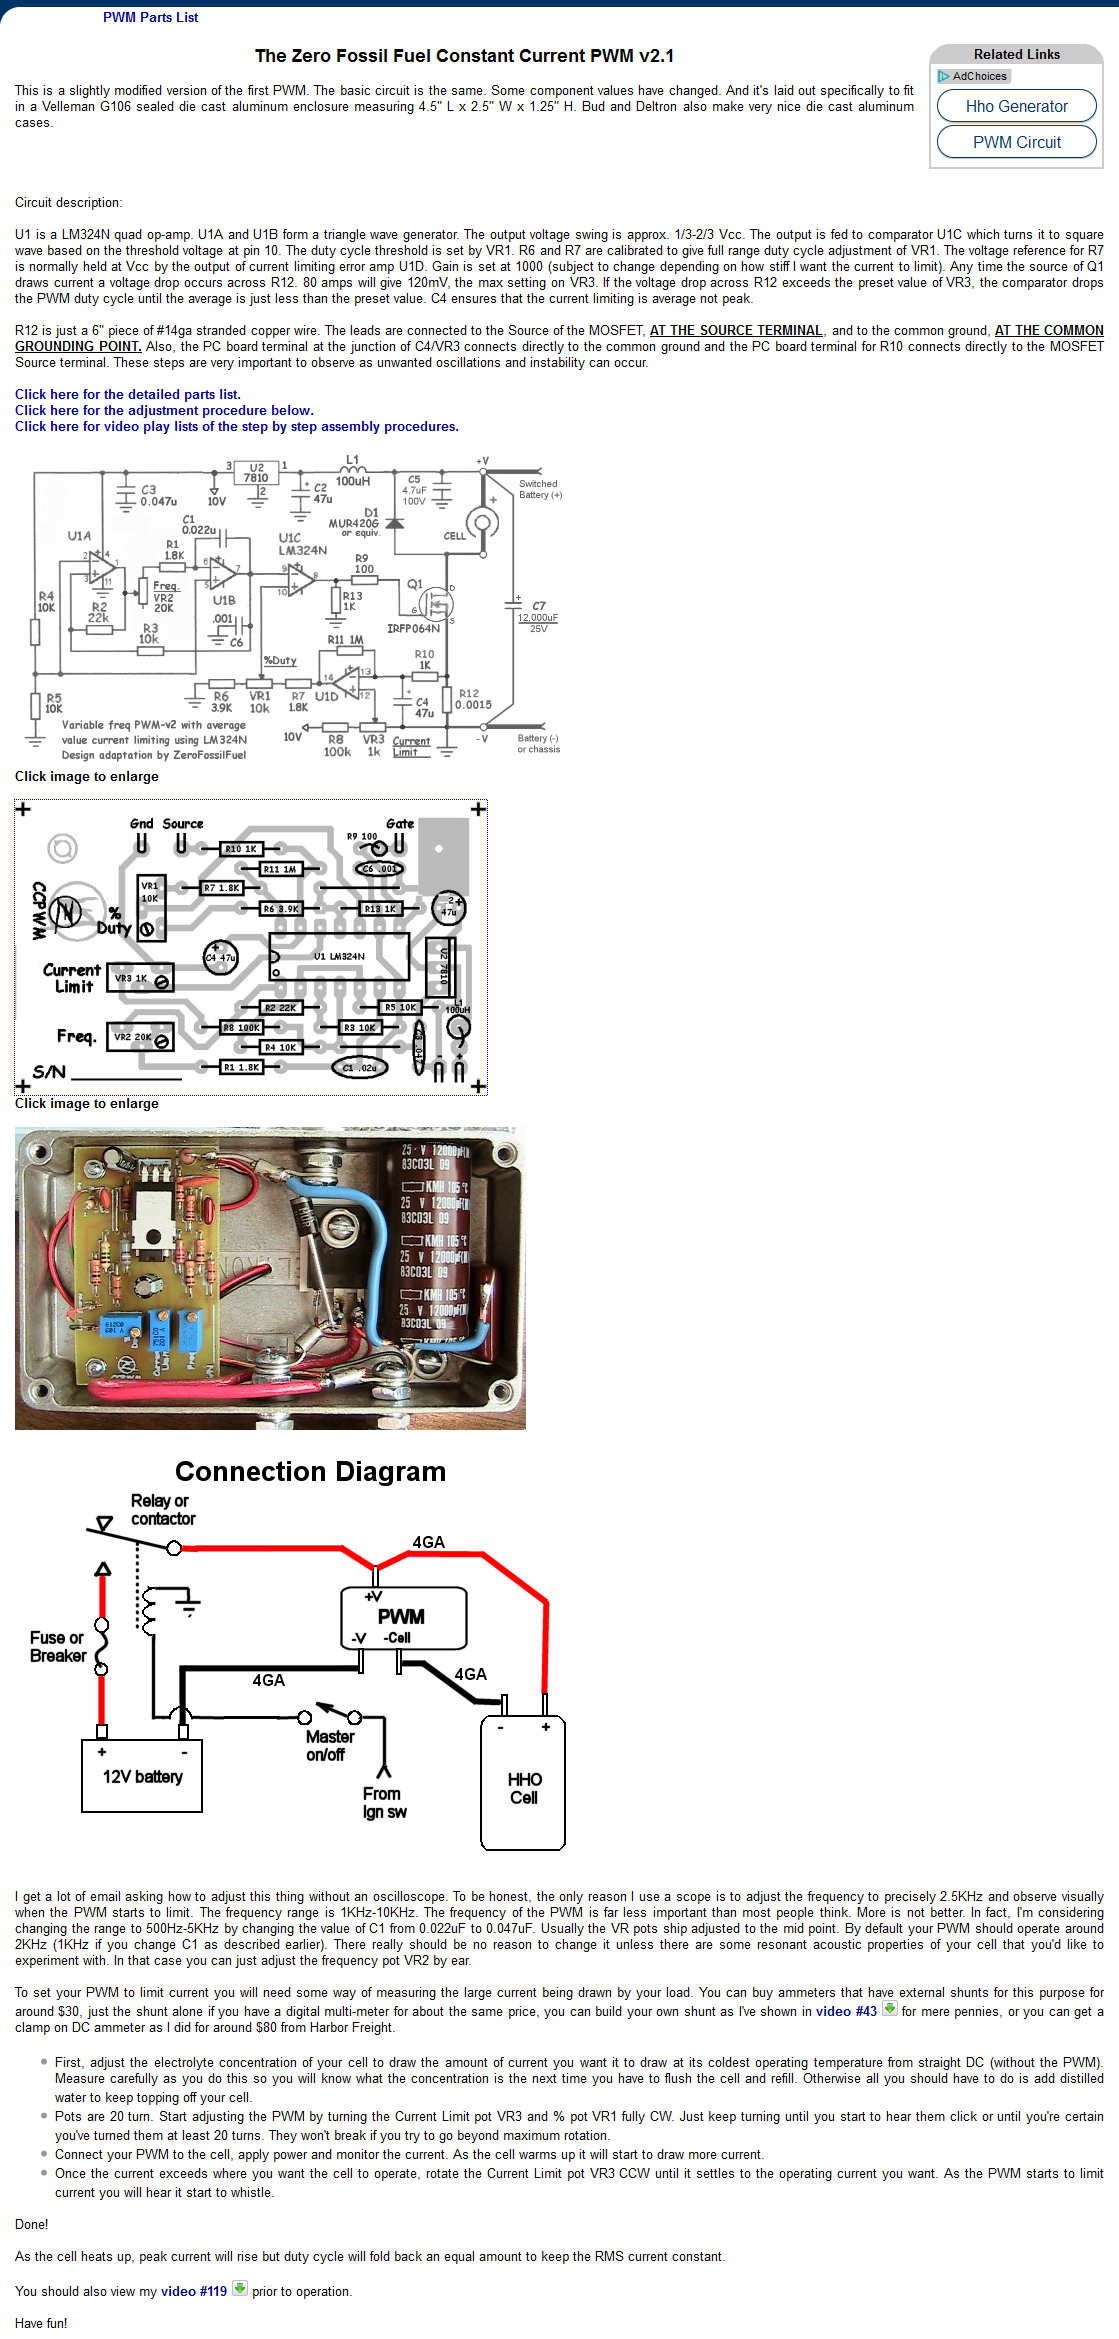 small resolution of pwm v2 1 plans parts list board layout and schematic